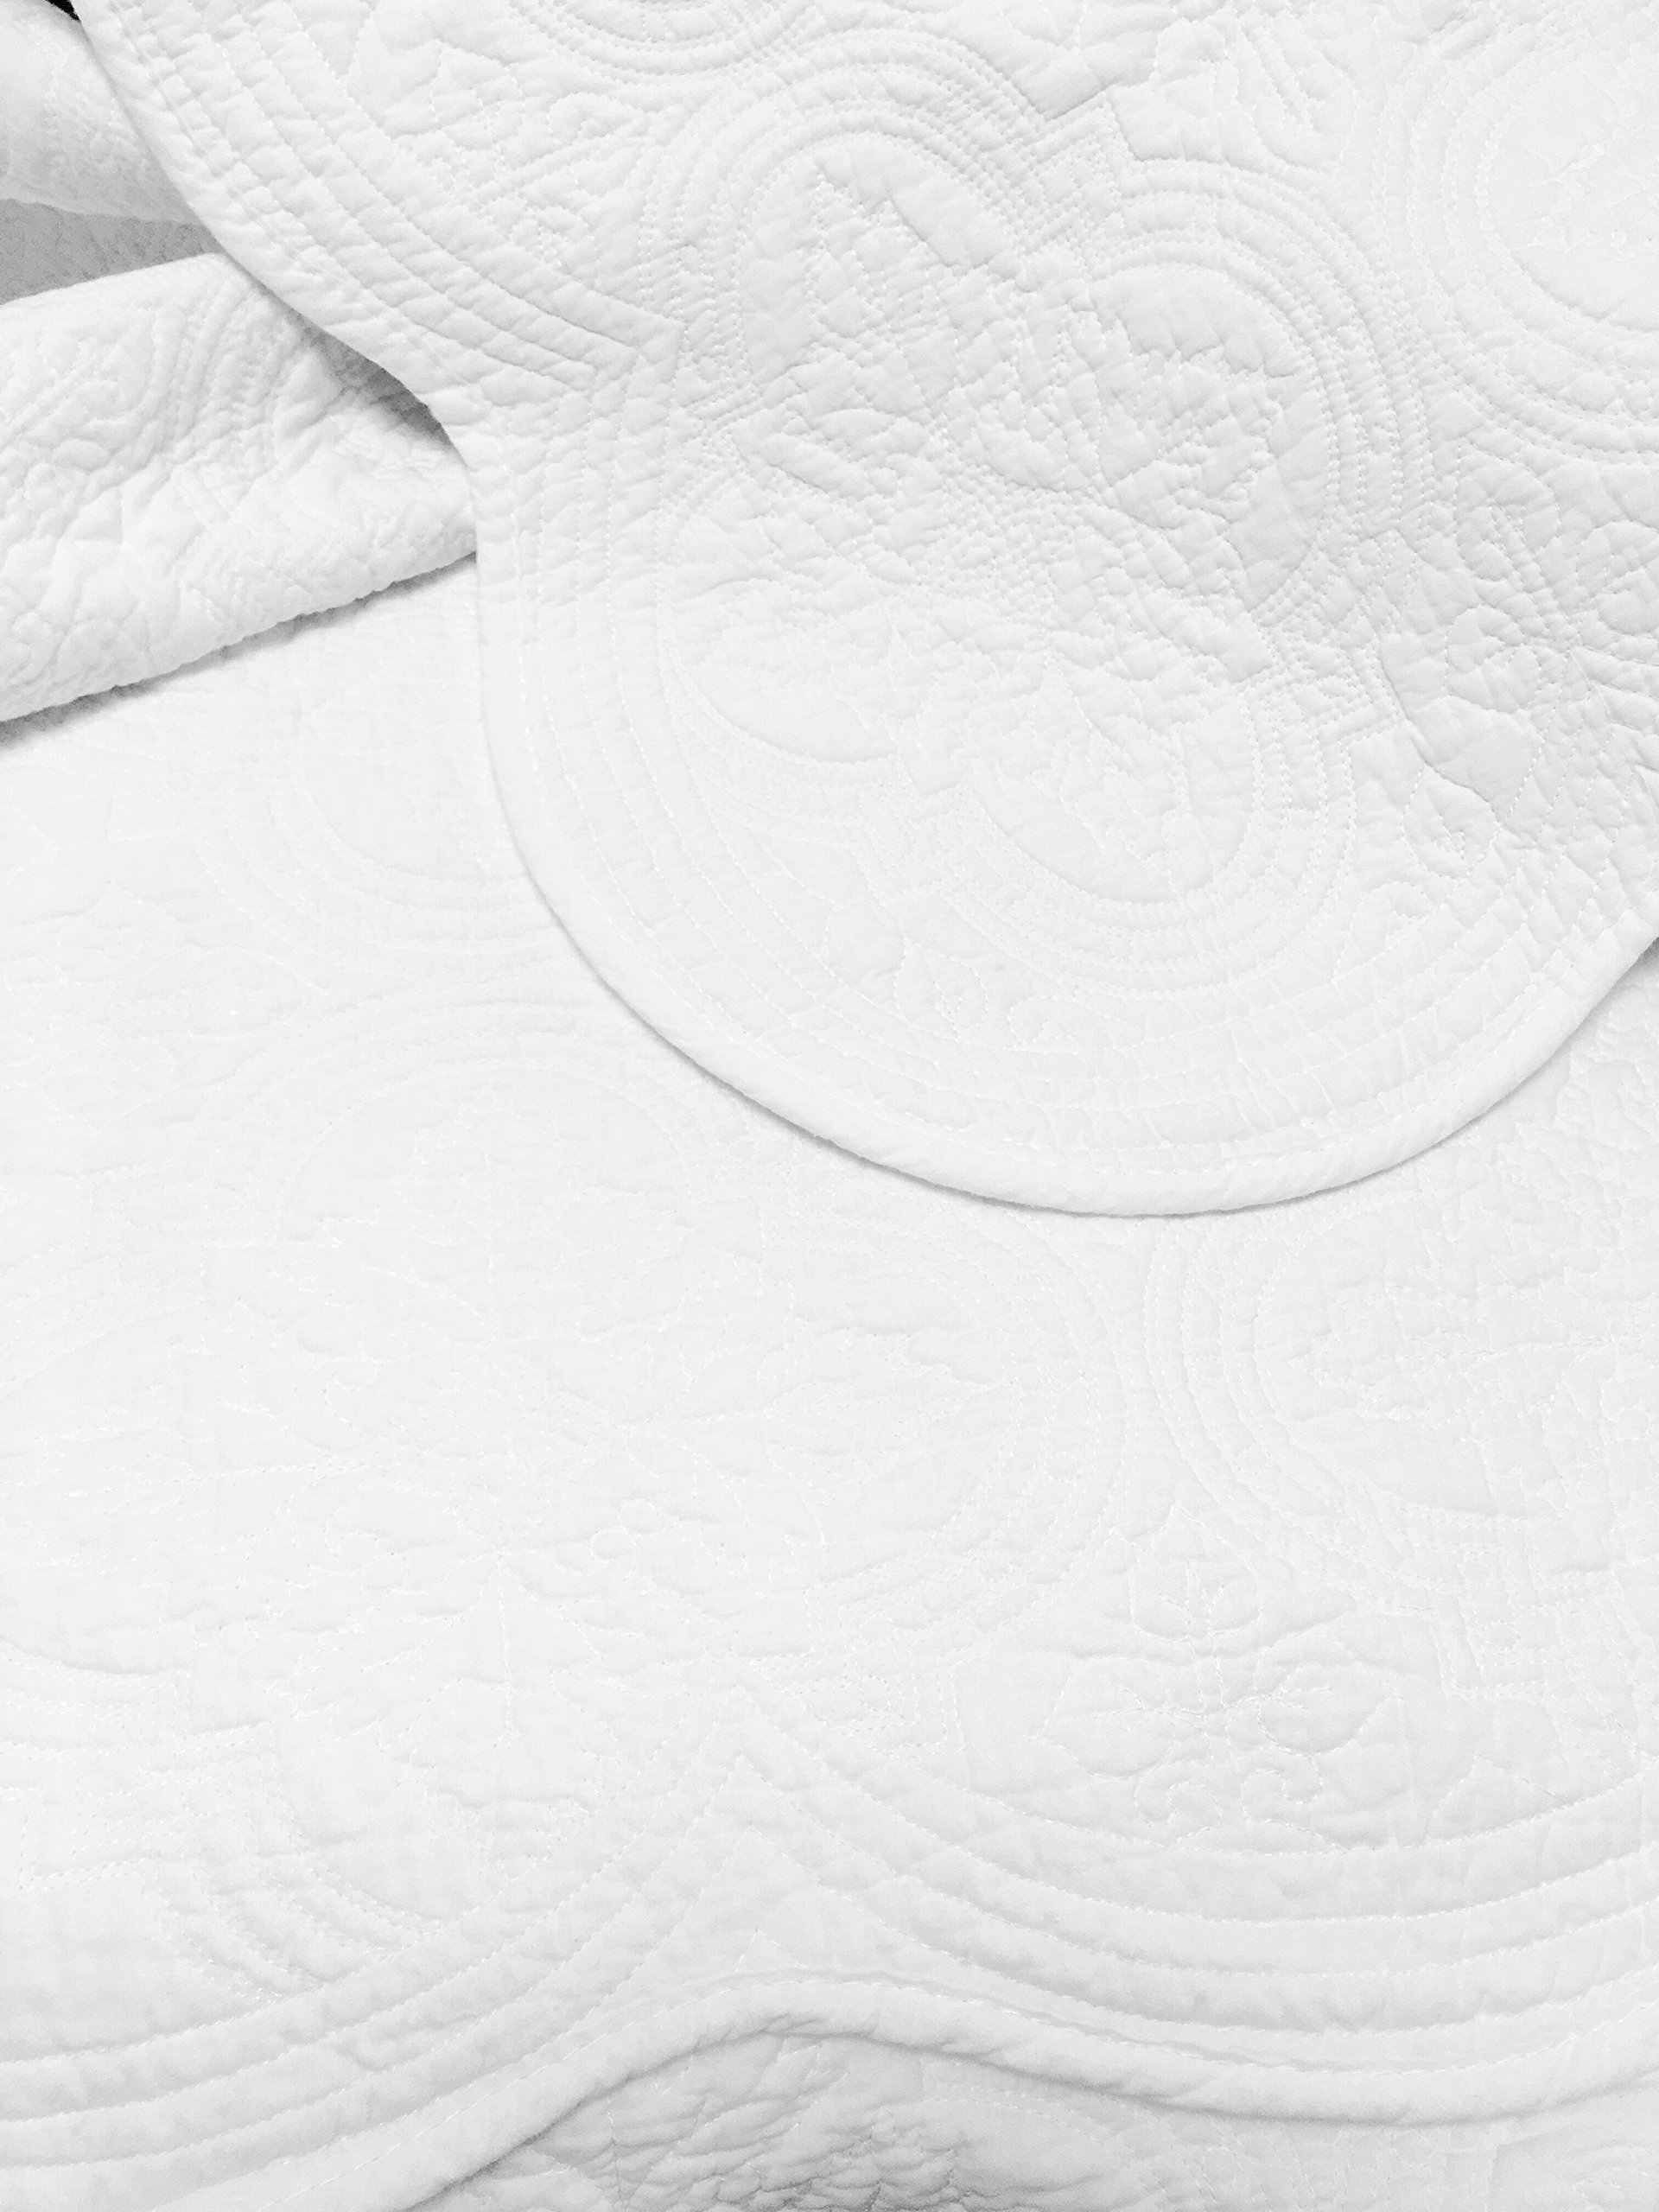 Cozy Line Home Fashions Victorian Medallion Solid White Matelasse Embossed 100% Cotton Bedding Quilt Set,Coverlet,for Bedroom/Guest Room (Blantyre - White, King - 3 Piece) by Cozy Line Home Fashions (Image #4)